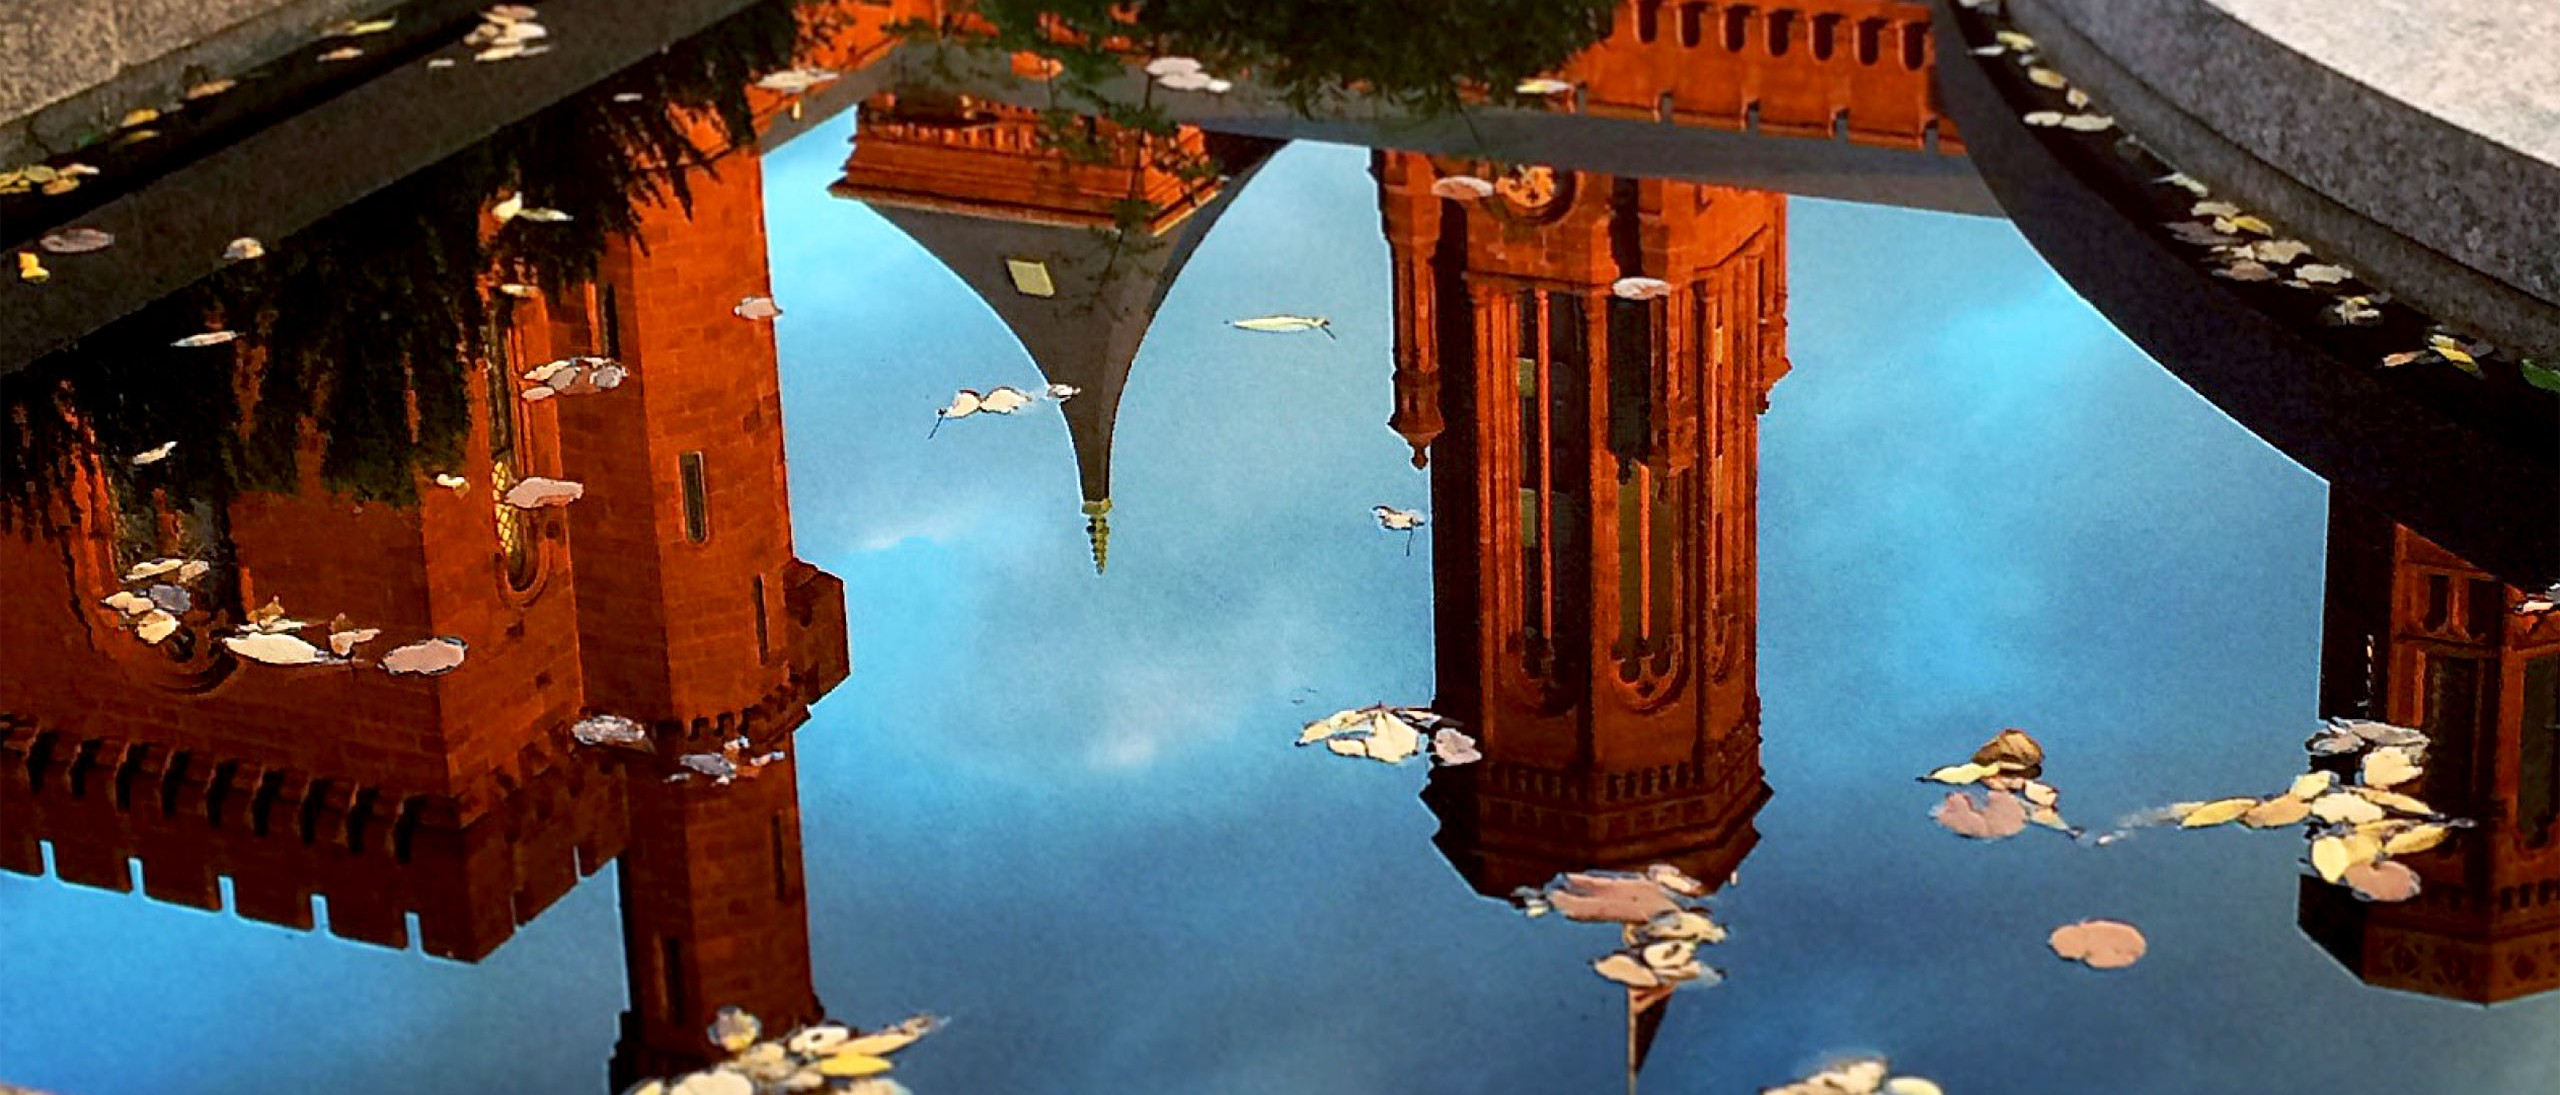 Reflection of the Smithsonian Castle